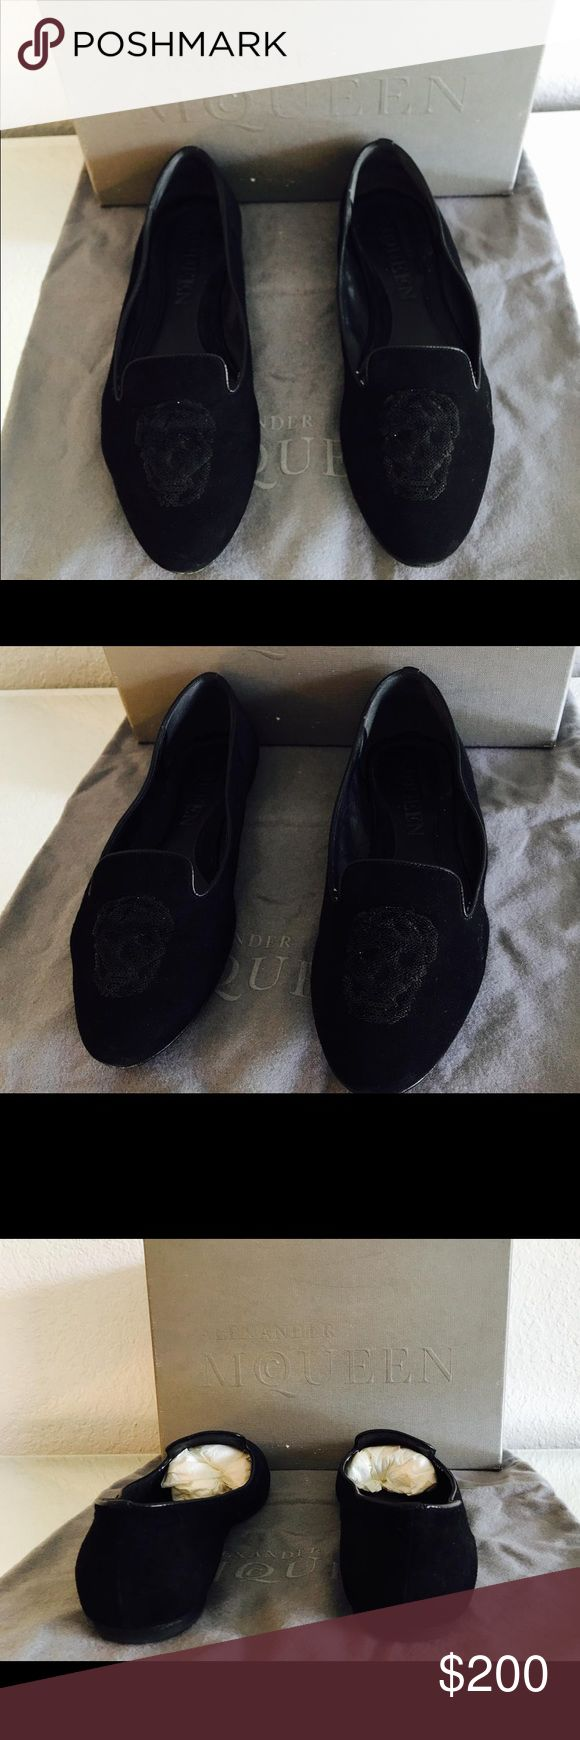 Alexander McQueen Loafers Alexander McQueen Loafers   Pre-loved   Size: 37  Color: Black   Details: Alexander McQUEEN black suede loafer with signature skull. Sequined skull on toe of shoe. These shoes are sized as a 37. Very comfortable, Country of Origin: Italy.     Retail: $645.00 + Tax  Our Price: $200.00  Thanks for stopping by to visit us!  Vanity's Vault Alexander McQueen Shoes Flats & Loafers